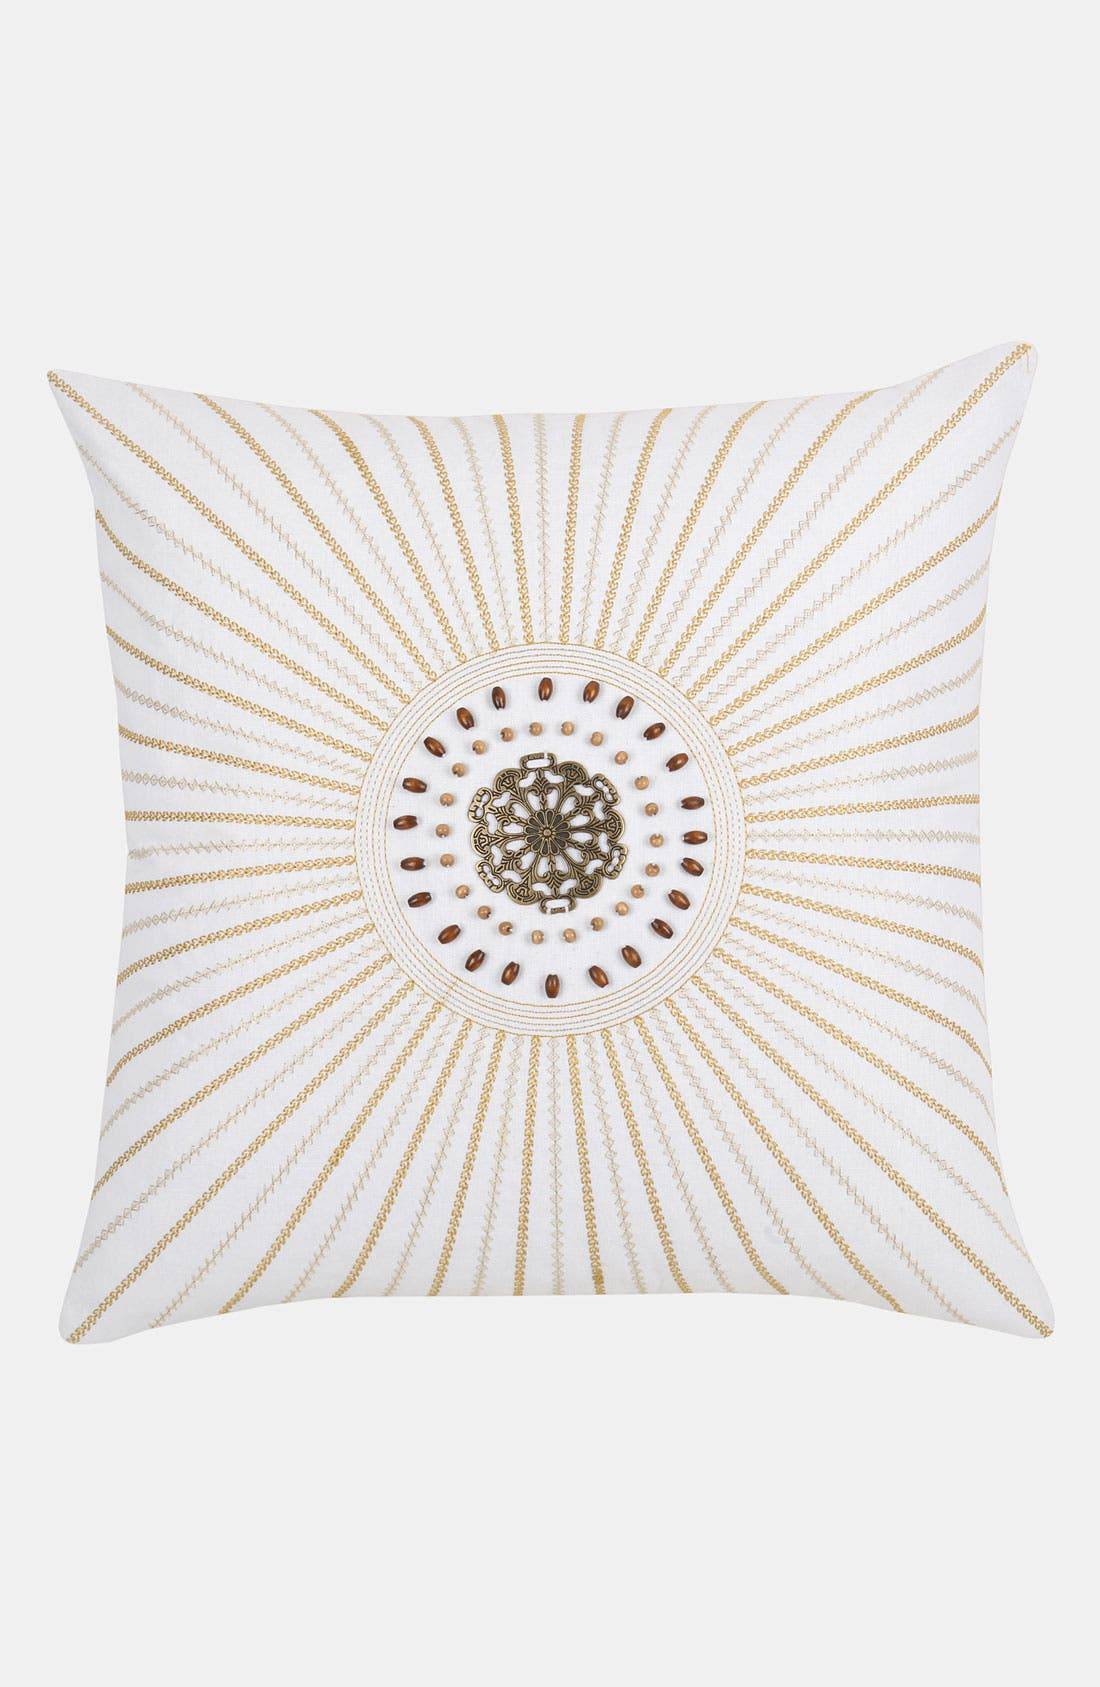 Alternate Image 1 Selected - Blissliving Home 'Sunburst' Pillow (Online Only)